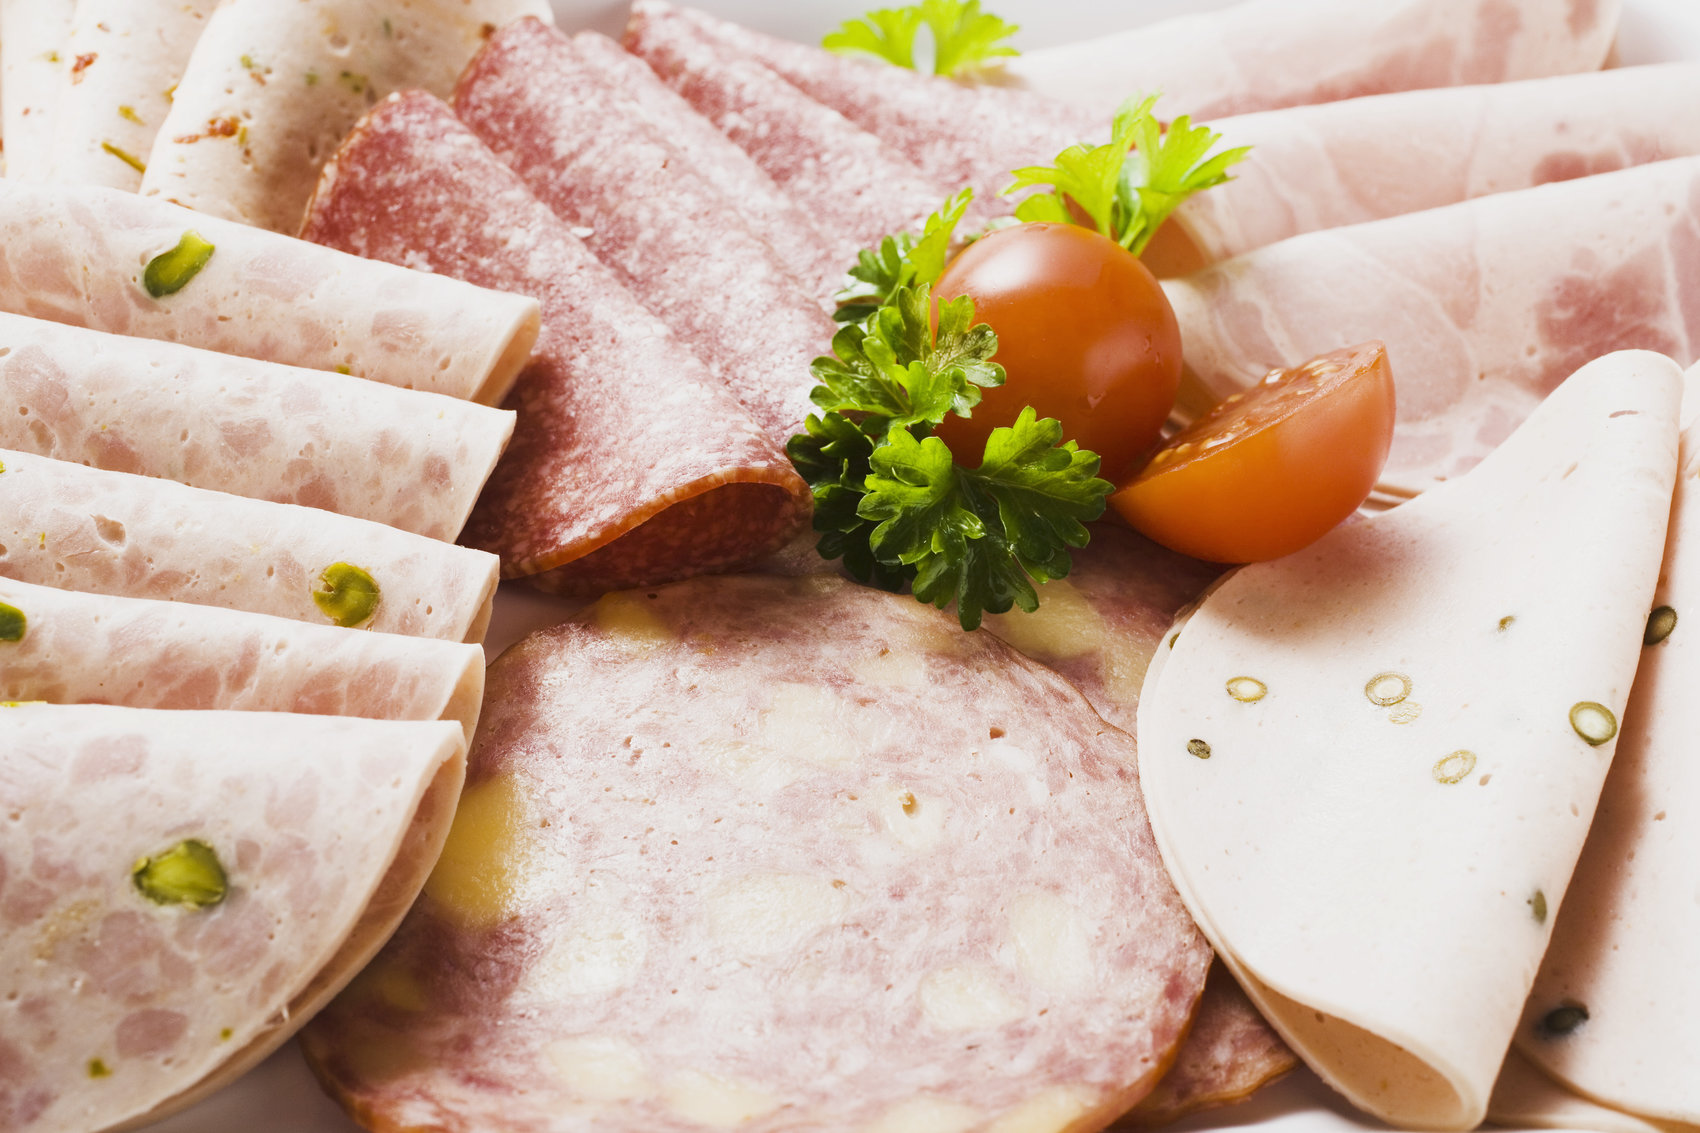 Duped In The Deli Aisle? 'No Nitrates Added' Labels Are Often Misleading